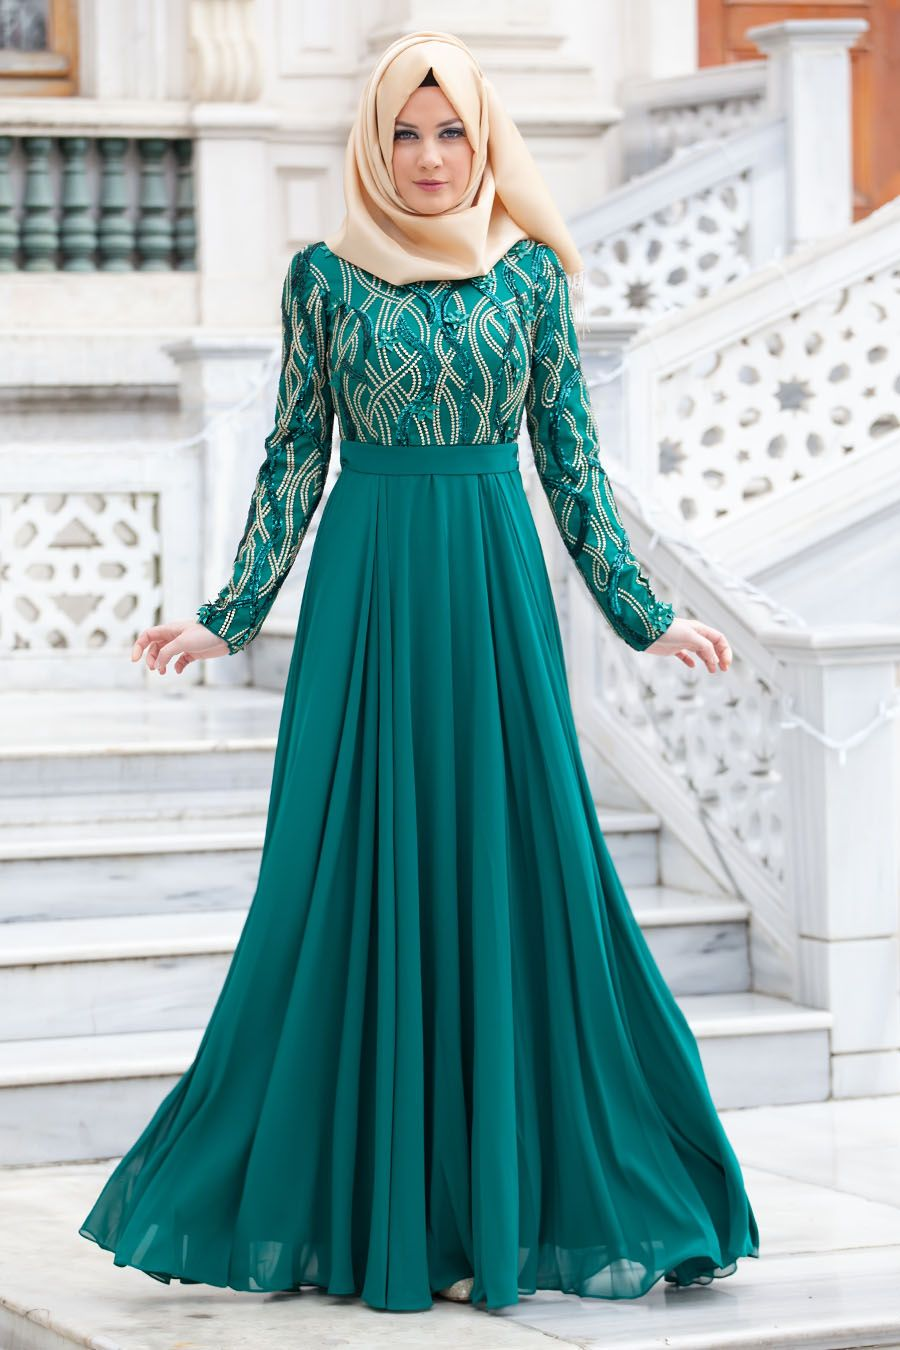 Check out these beautiful gowns and order yours today http://ow.ly ...